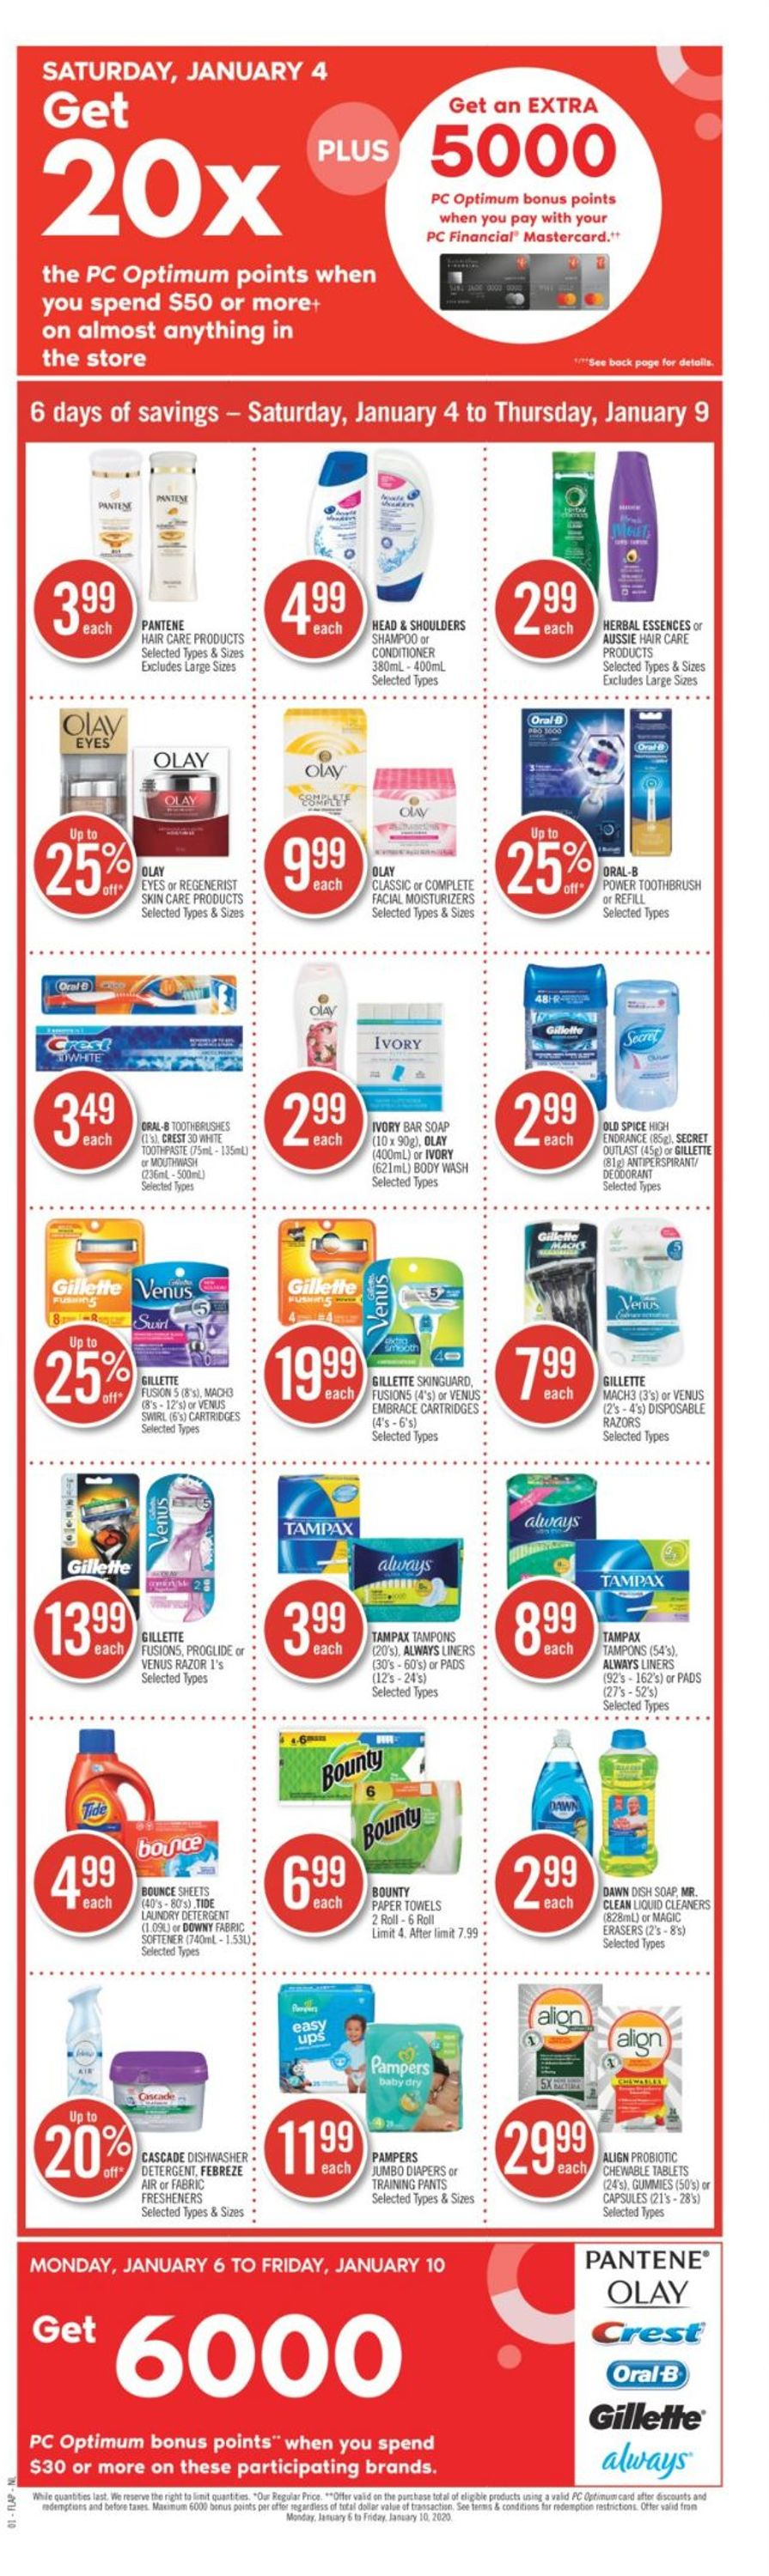 Pharmaprix Flyer - 01/04-01/09/2020